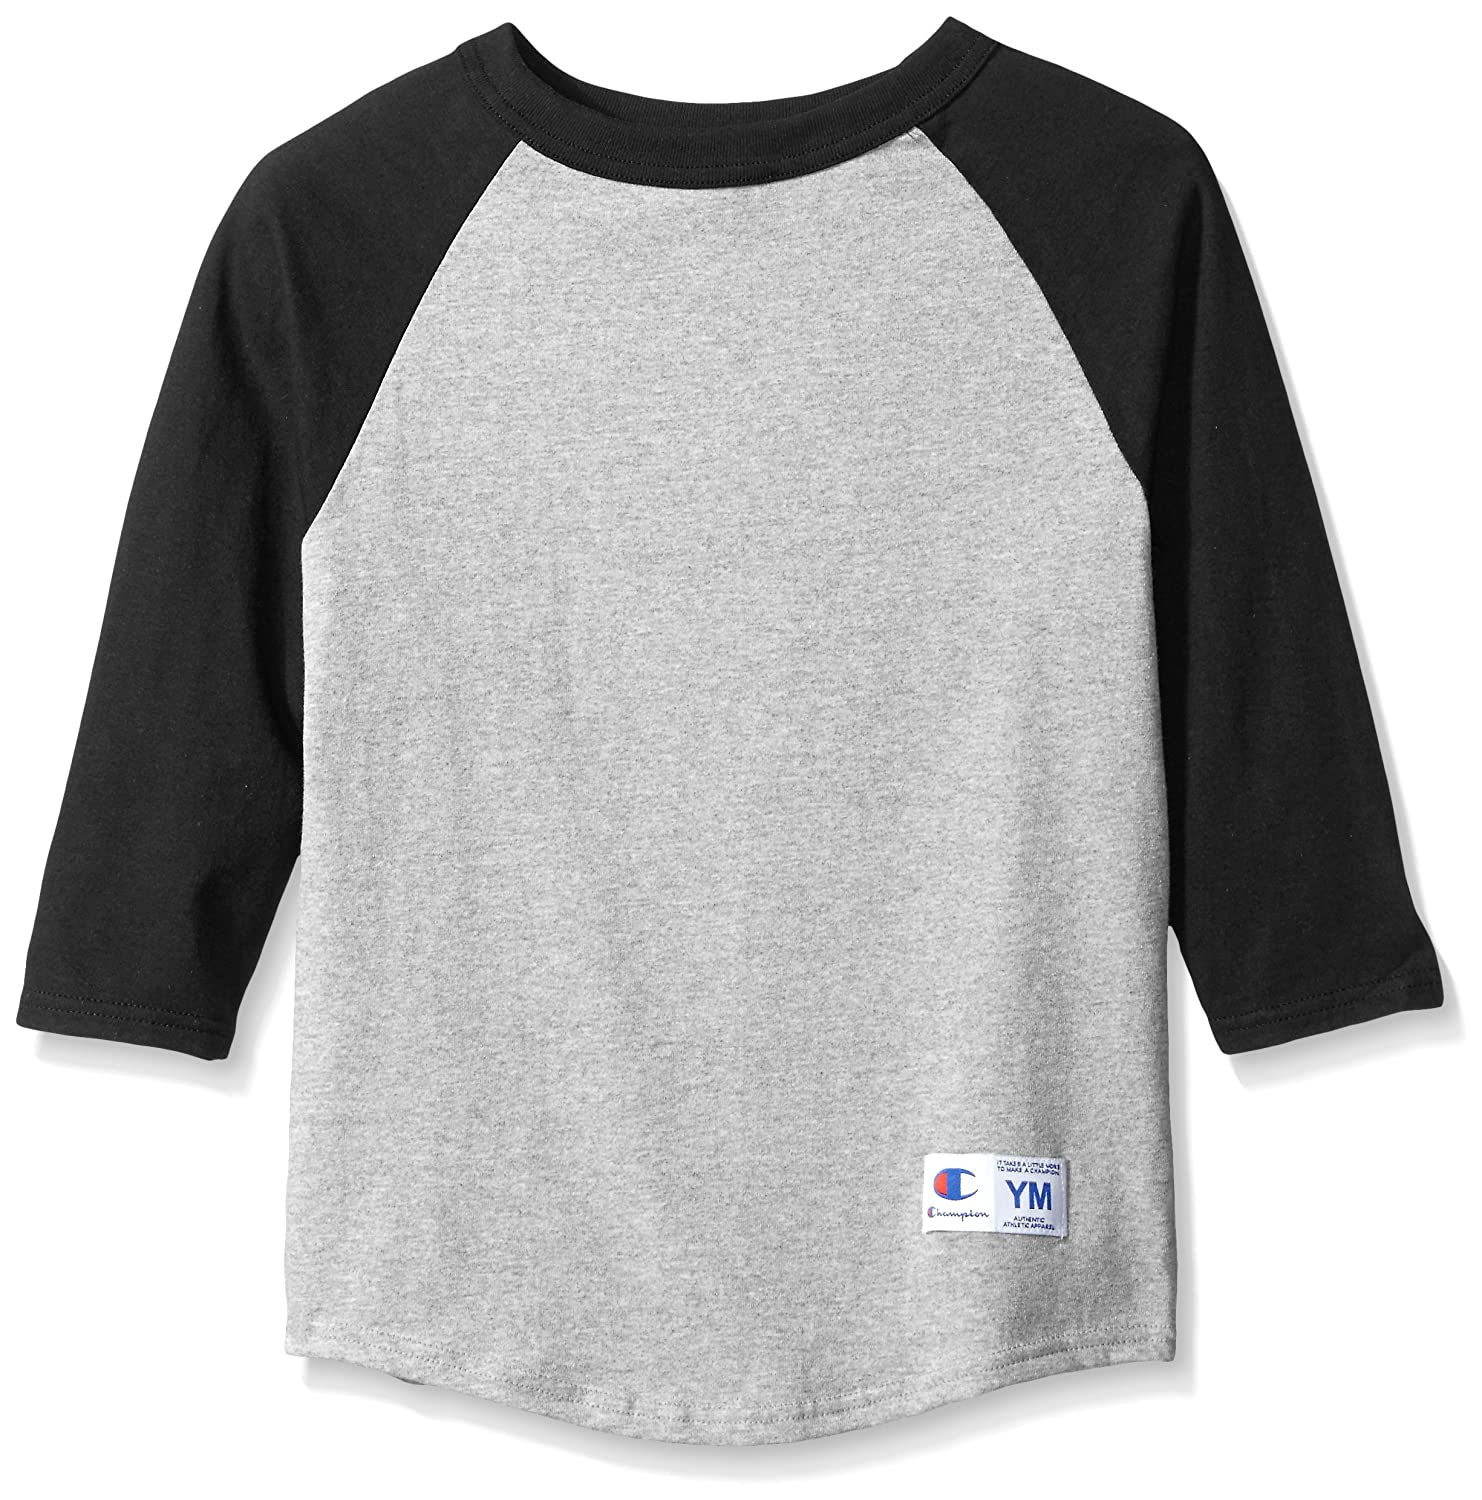 Pro tag 100 cotton 3 4 sleeve raglan baseball shirt in white black - Pro Tag 100 Cotton 3 4 Sleeve Raglan Baseball Shirt In White Black 8